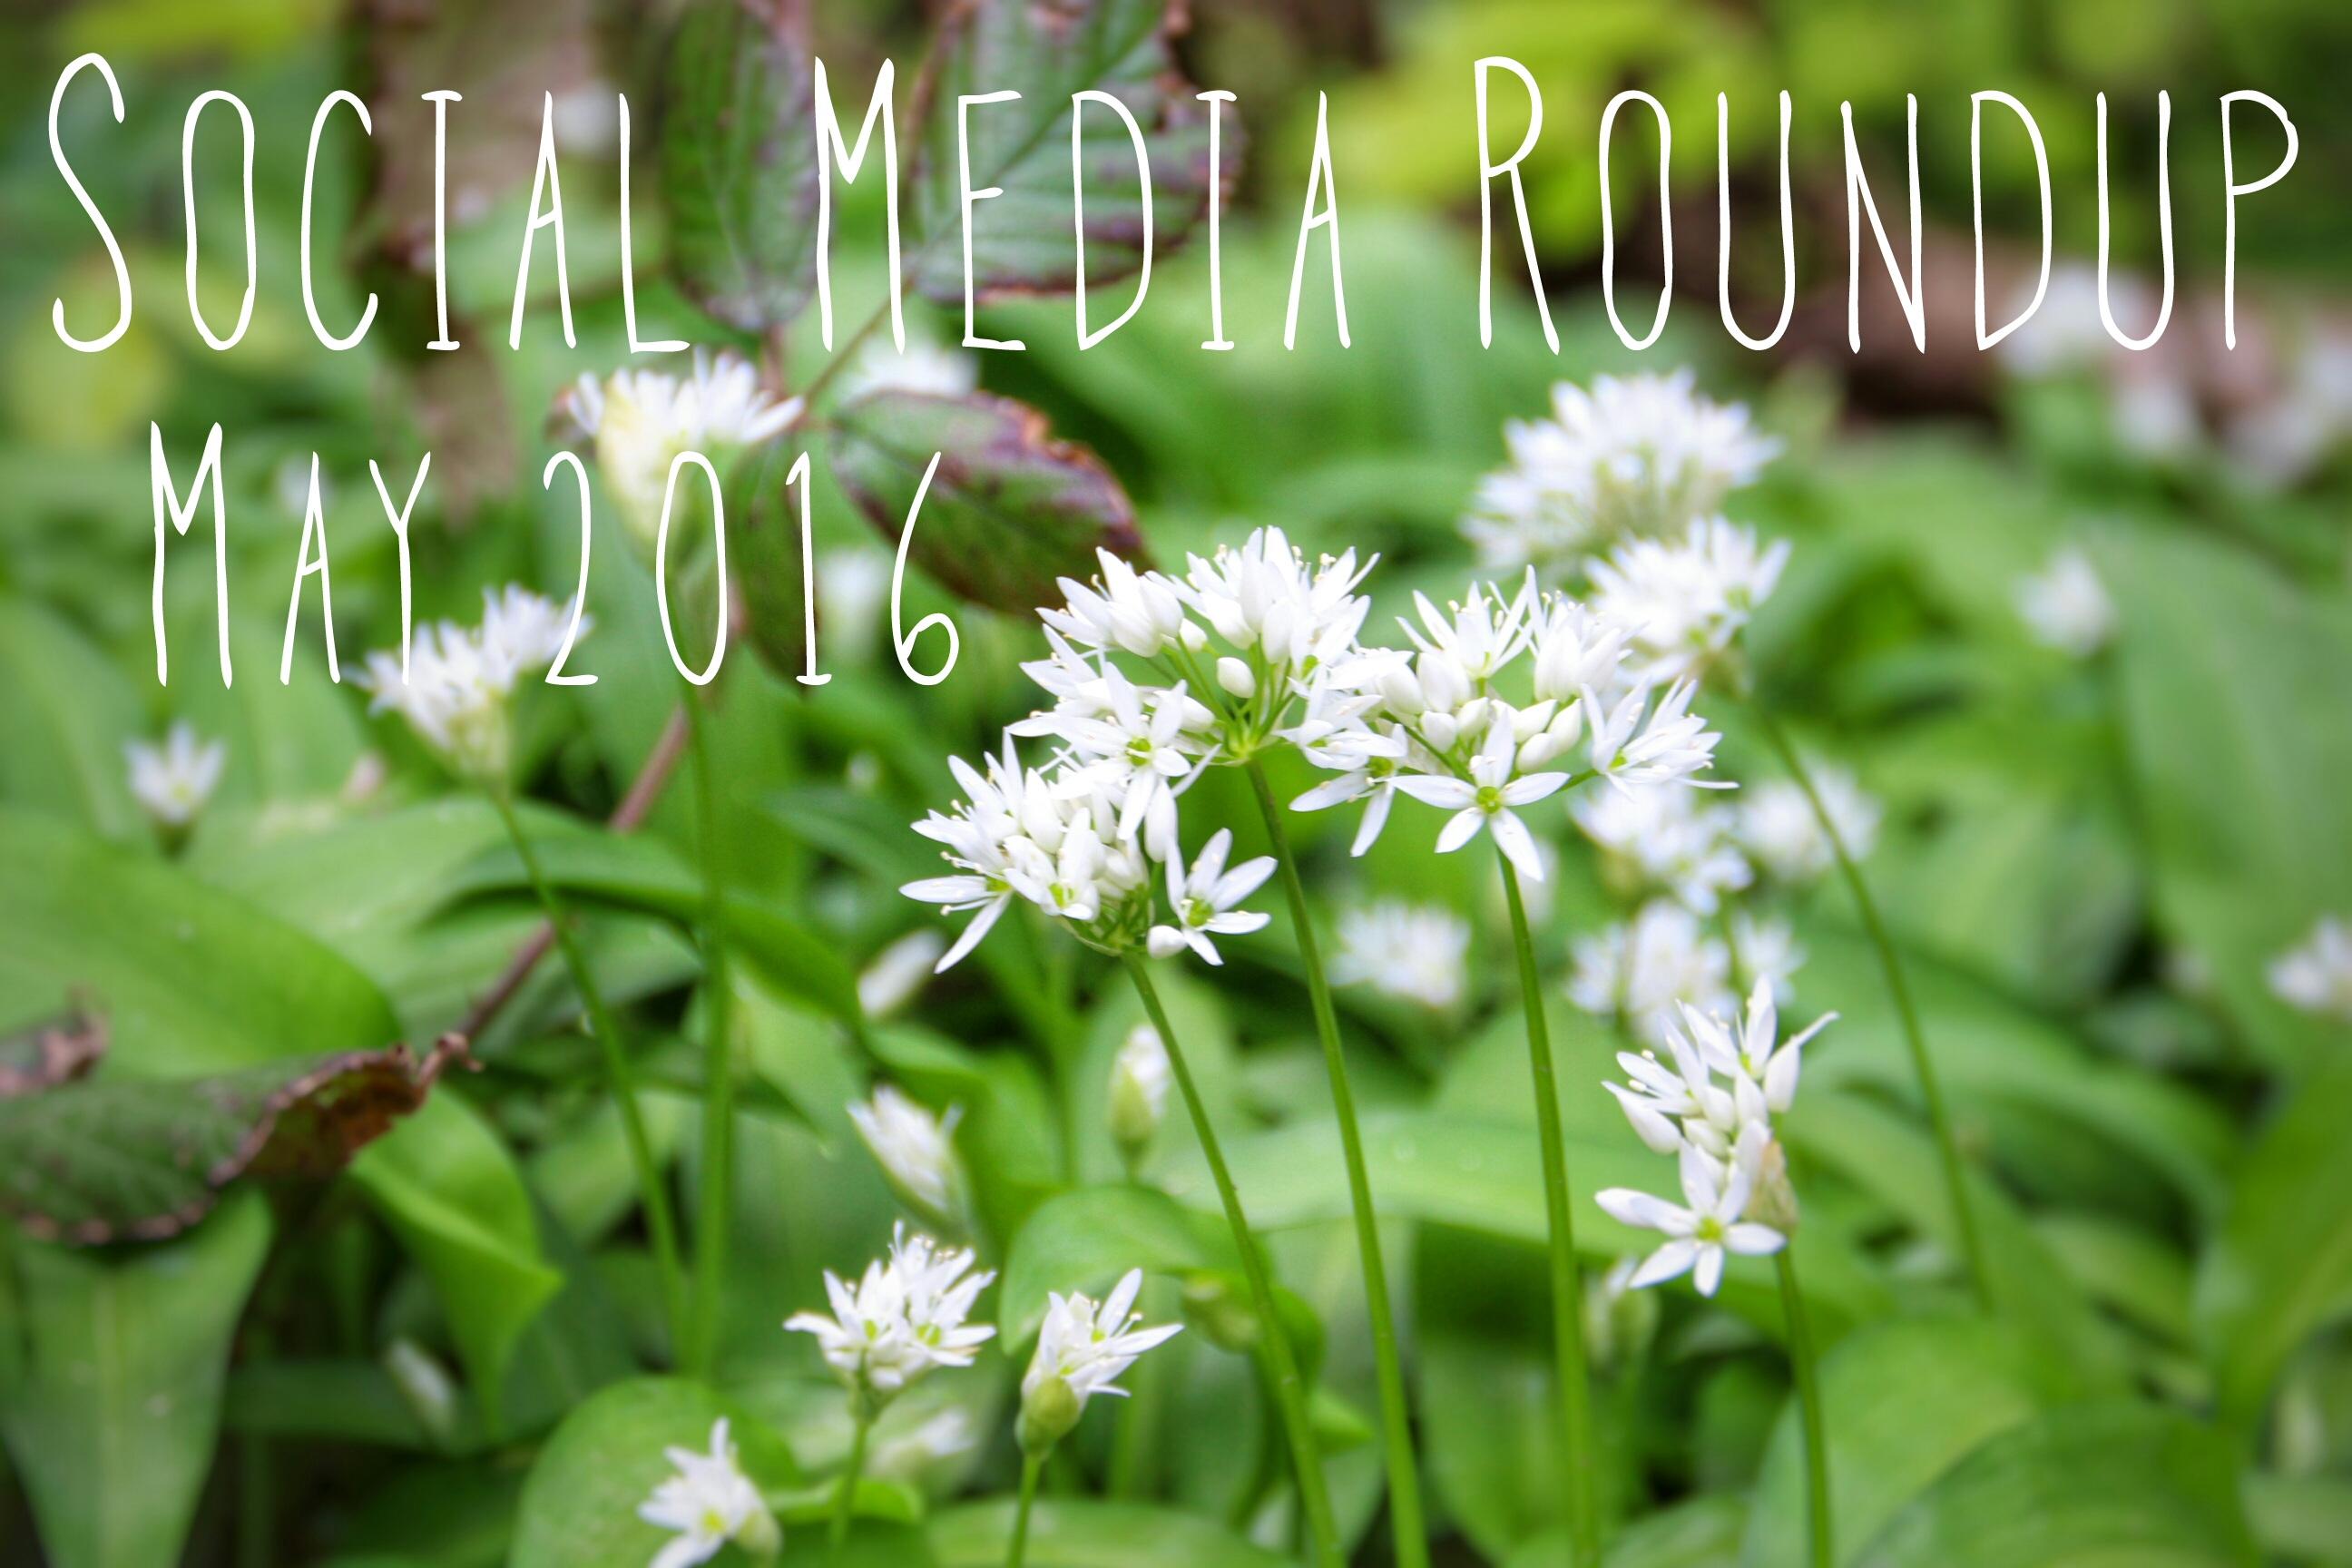 Social Media Roundup May 2016 header